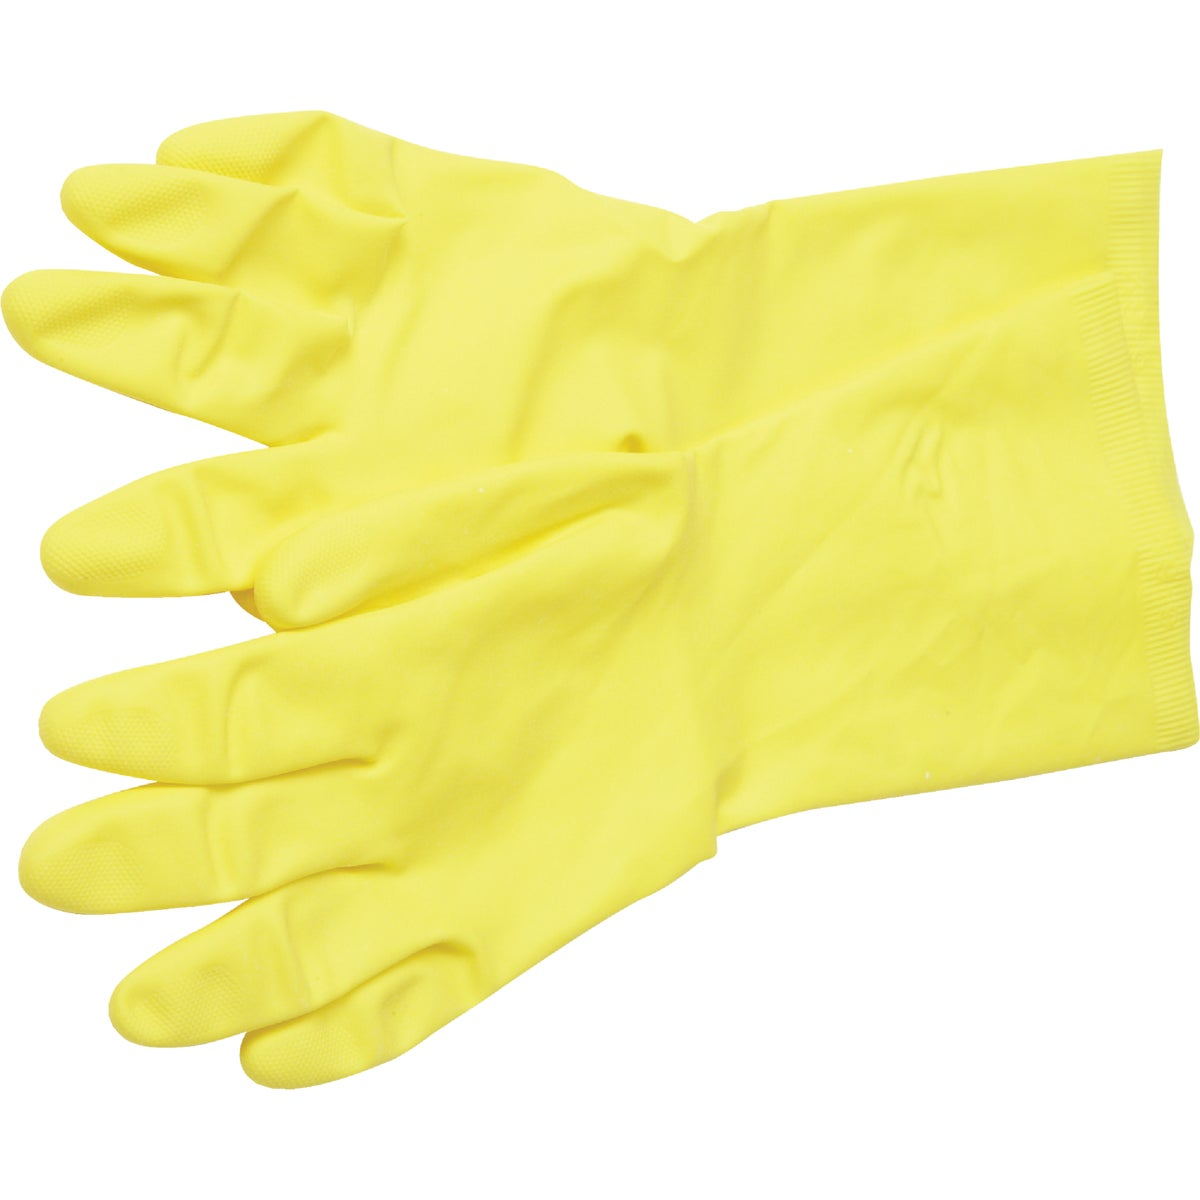 XXL LATEX GLOVES - 634360 by Do it Best